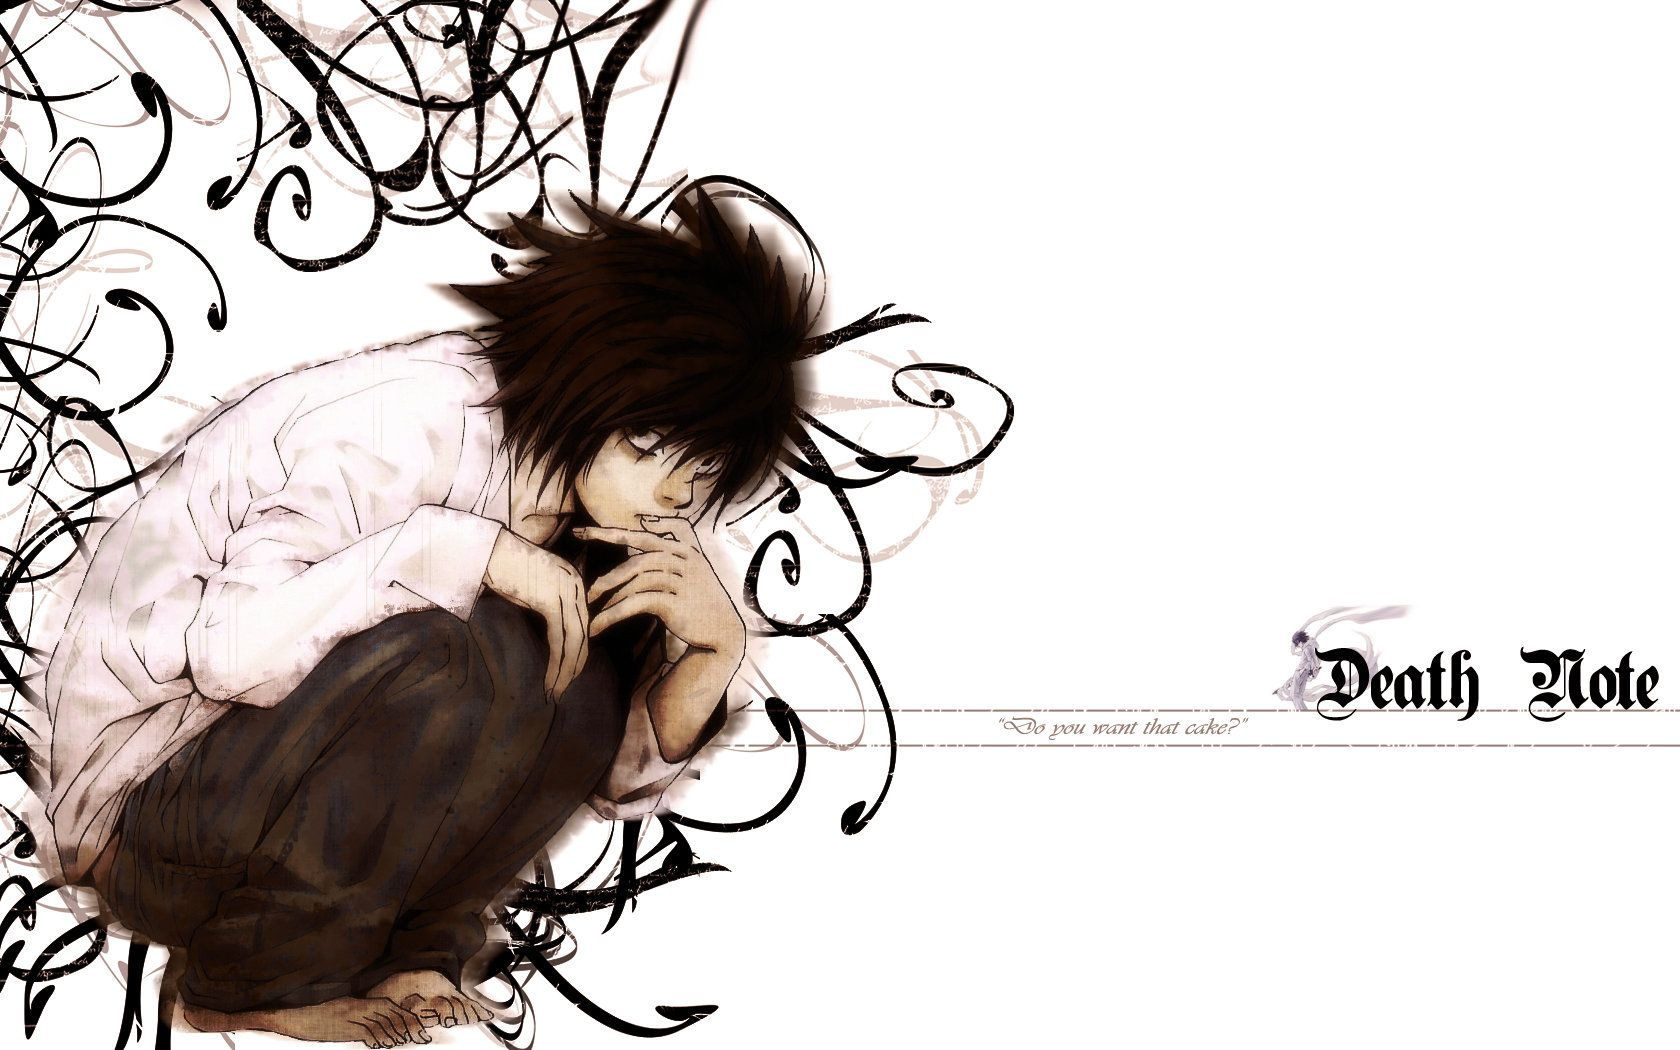 Death Note L Wallpaper by ekkkkkknoes on DeviantArt 1024